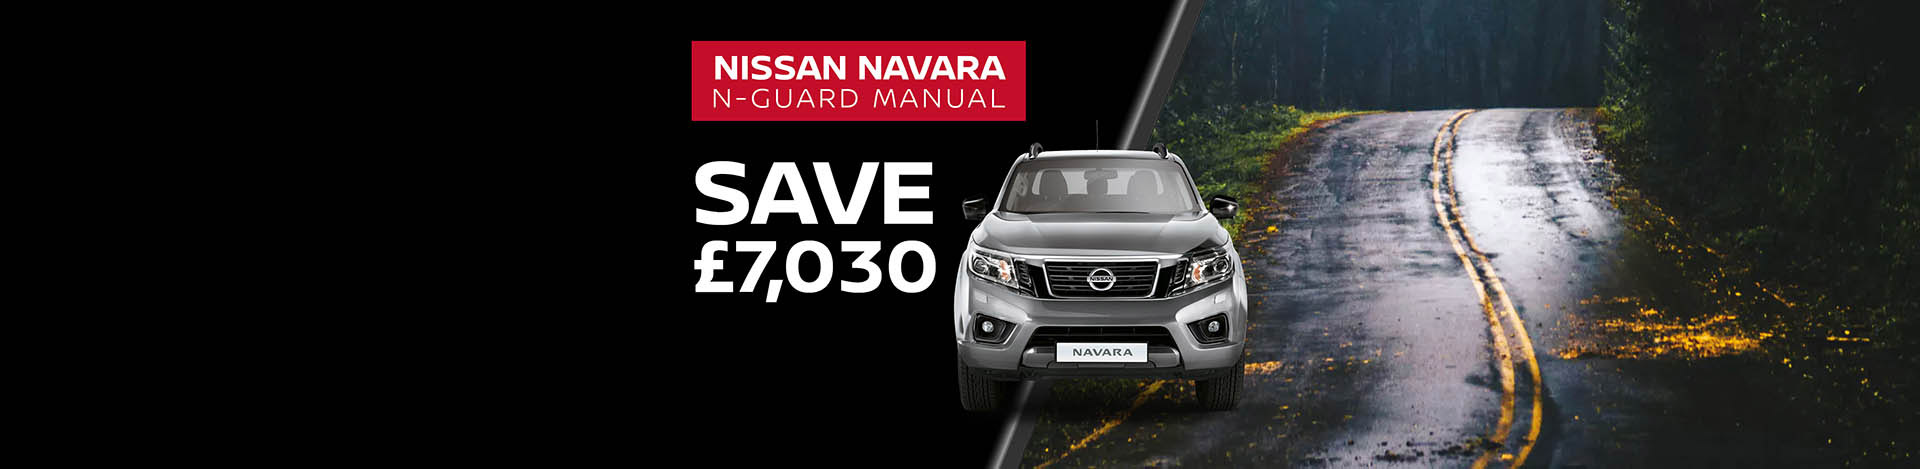 Nissan Navara N-Guard Manual Offer